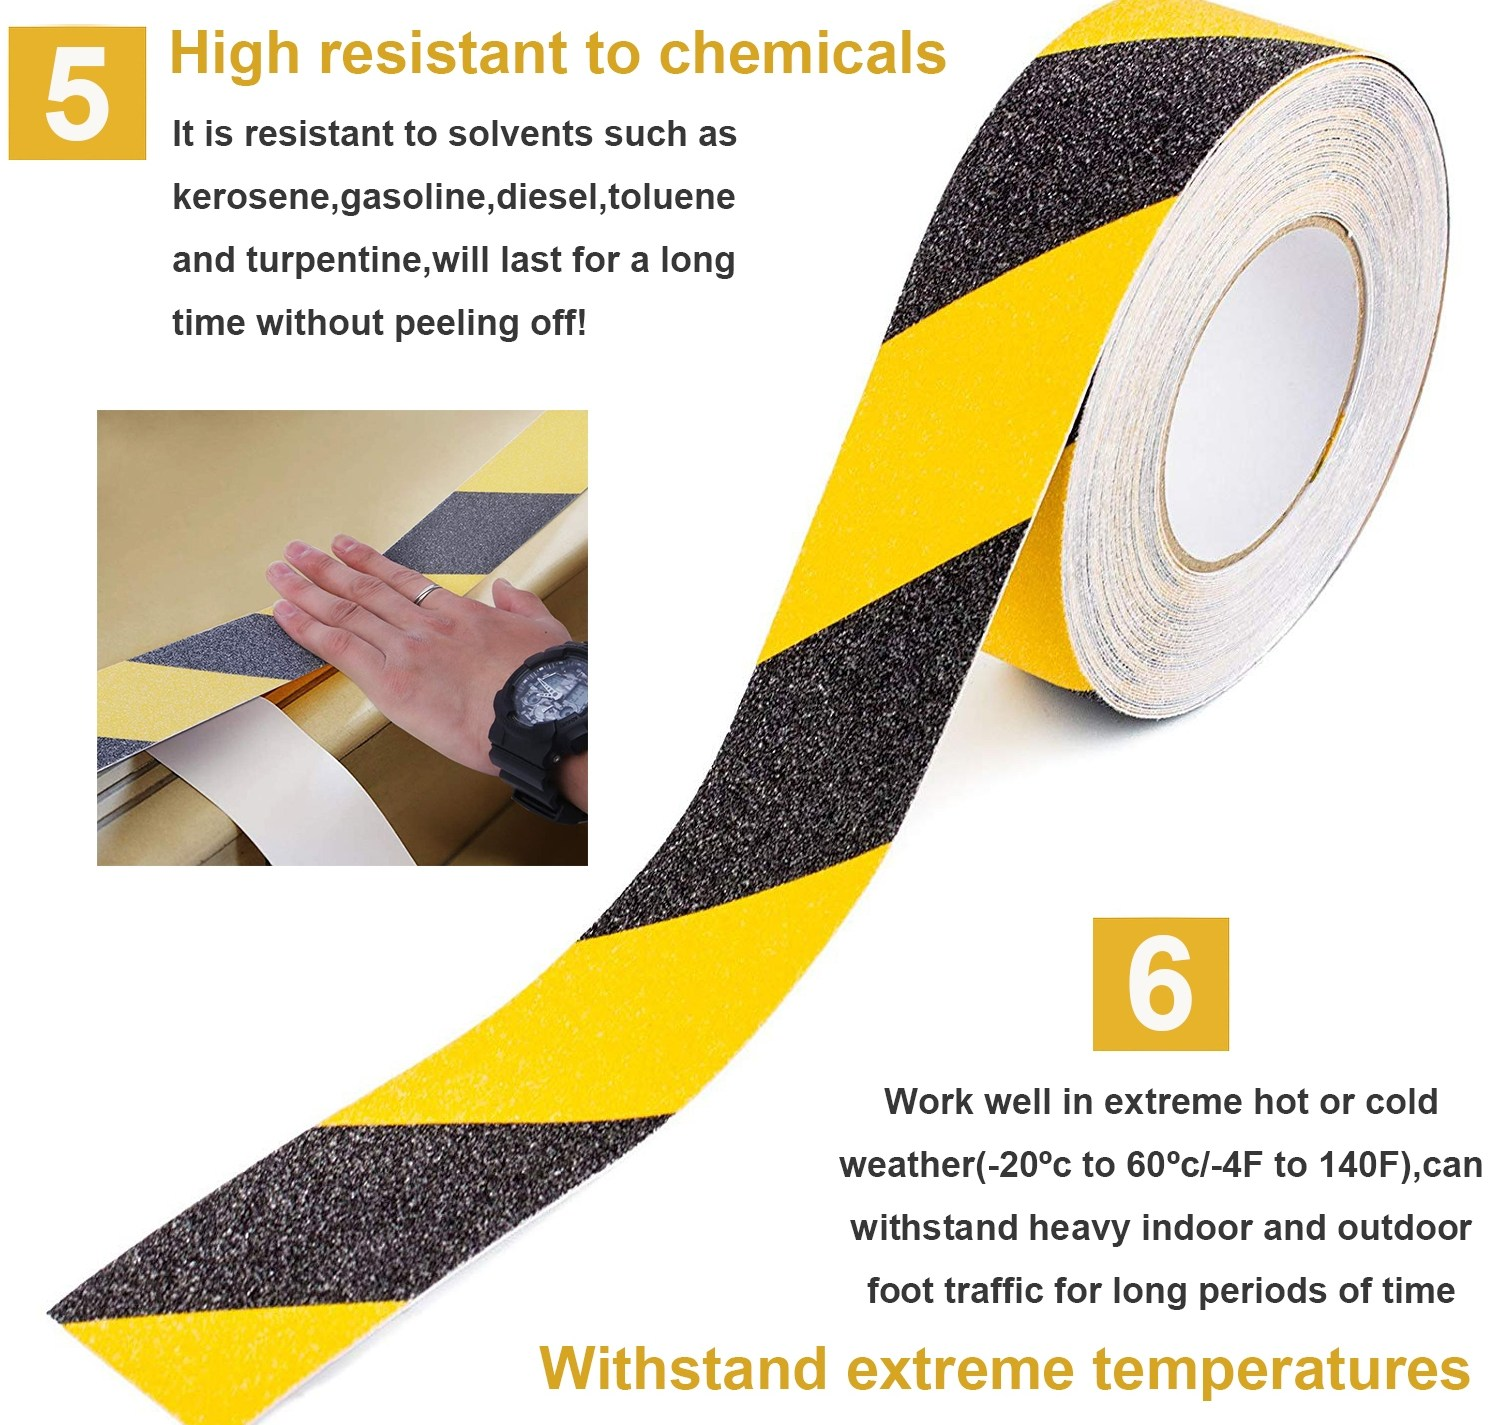 Us 19 99 Reliancer Anti Slip Safety Grip Tape 2Inx60Ft Non Skid | Reflective Tape For Outdoor Steps | Hazard Warning Tape | Yellow | Self Adhesive | Retro Reflective | Concrete Steps